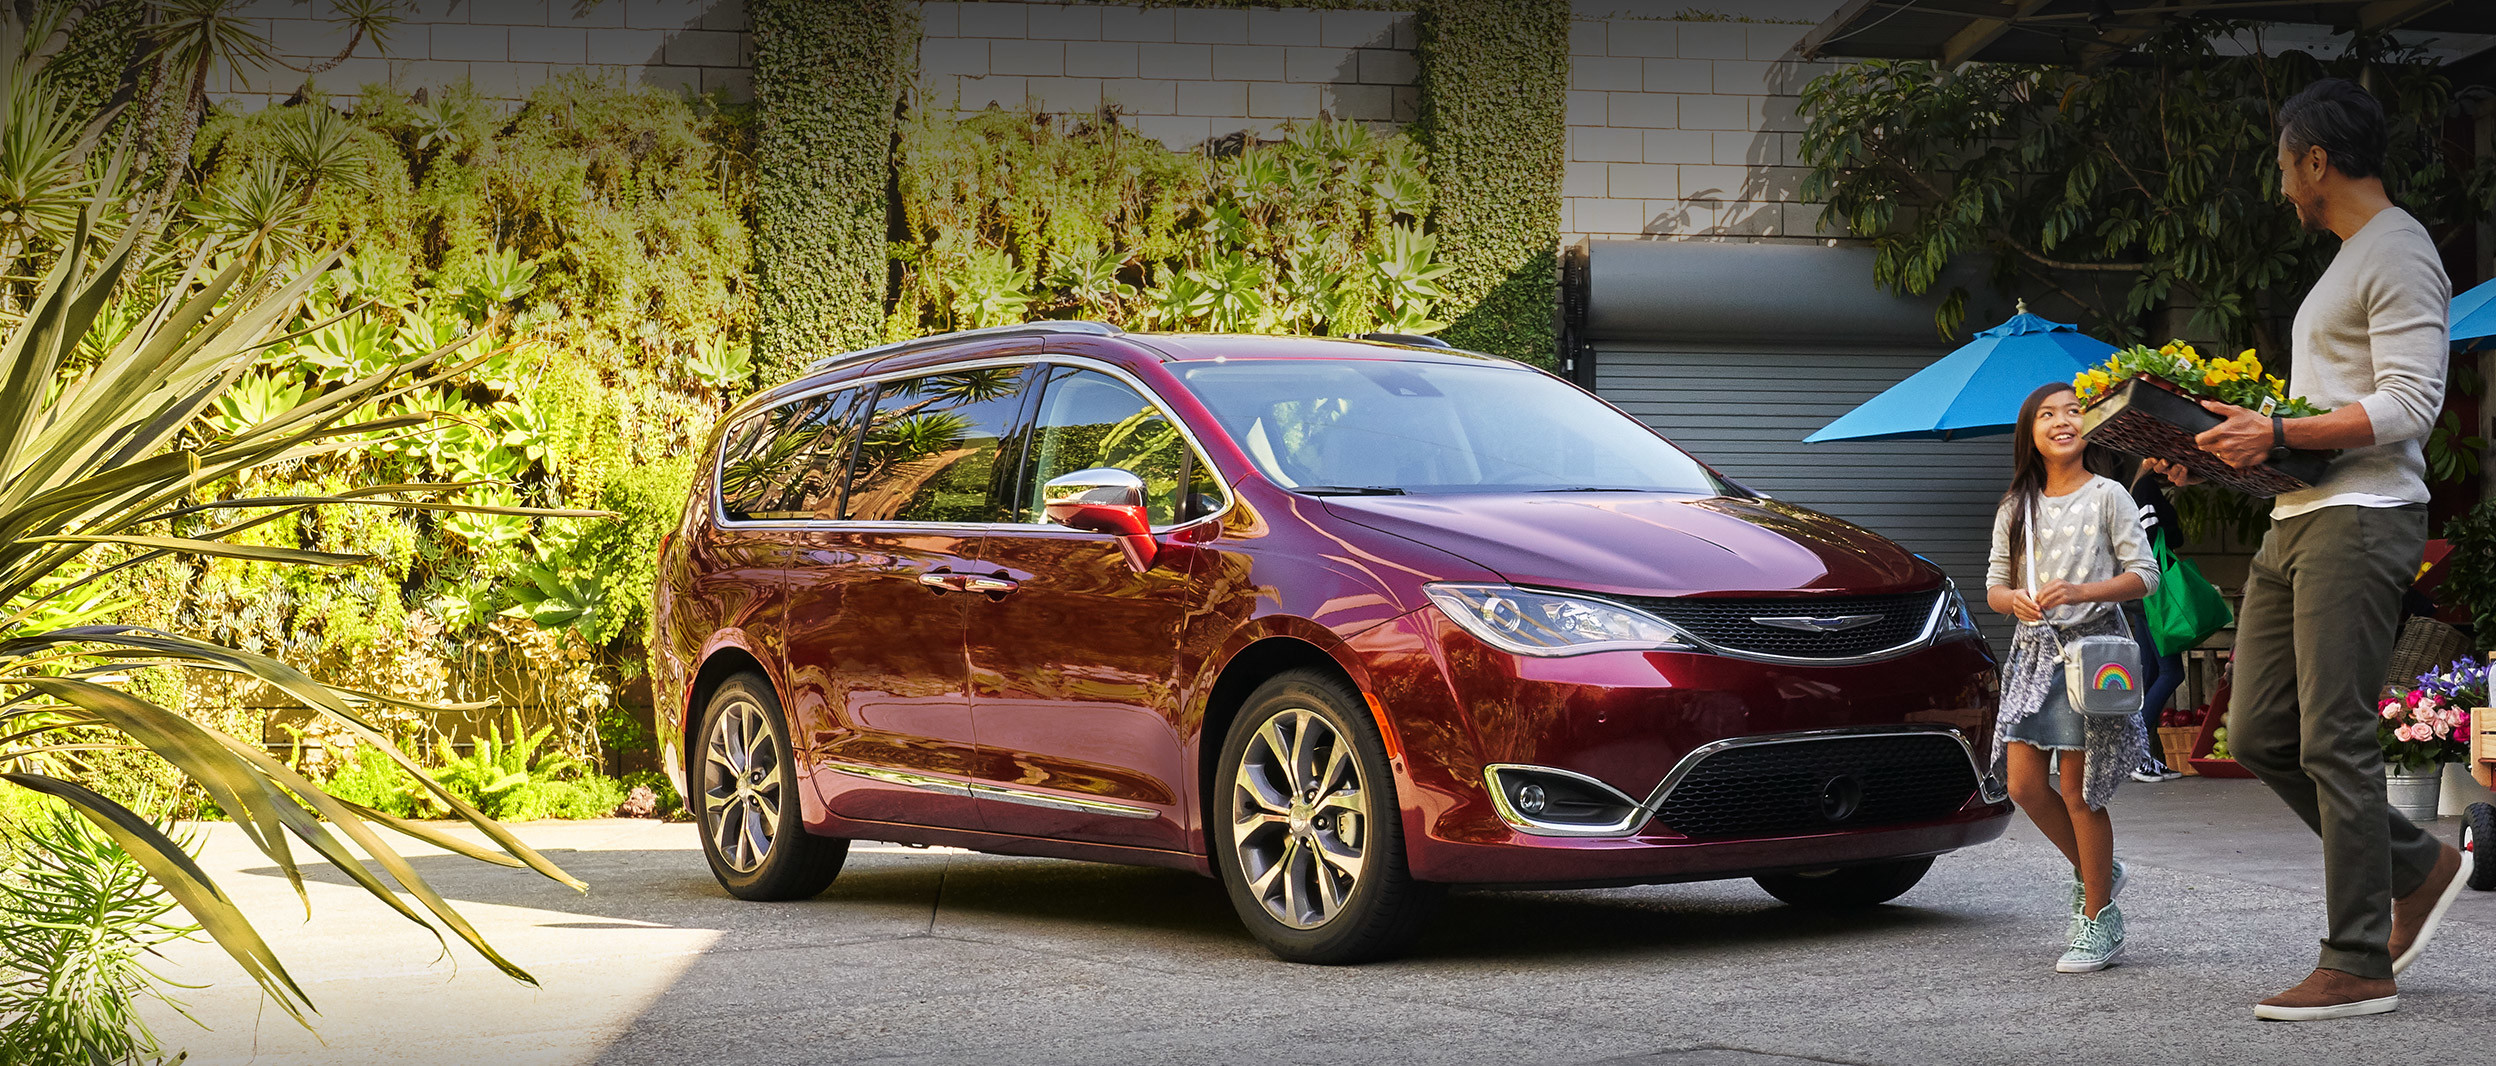 Family walking towards a red 2020 Chrysler Pacifica.